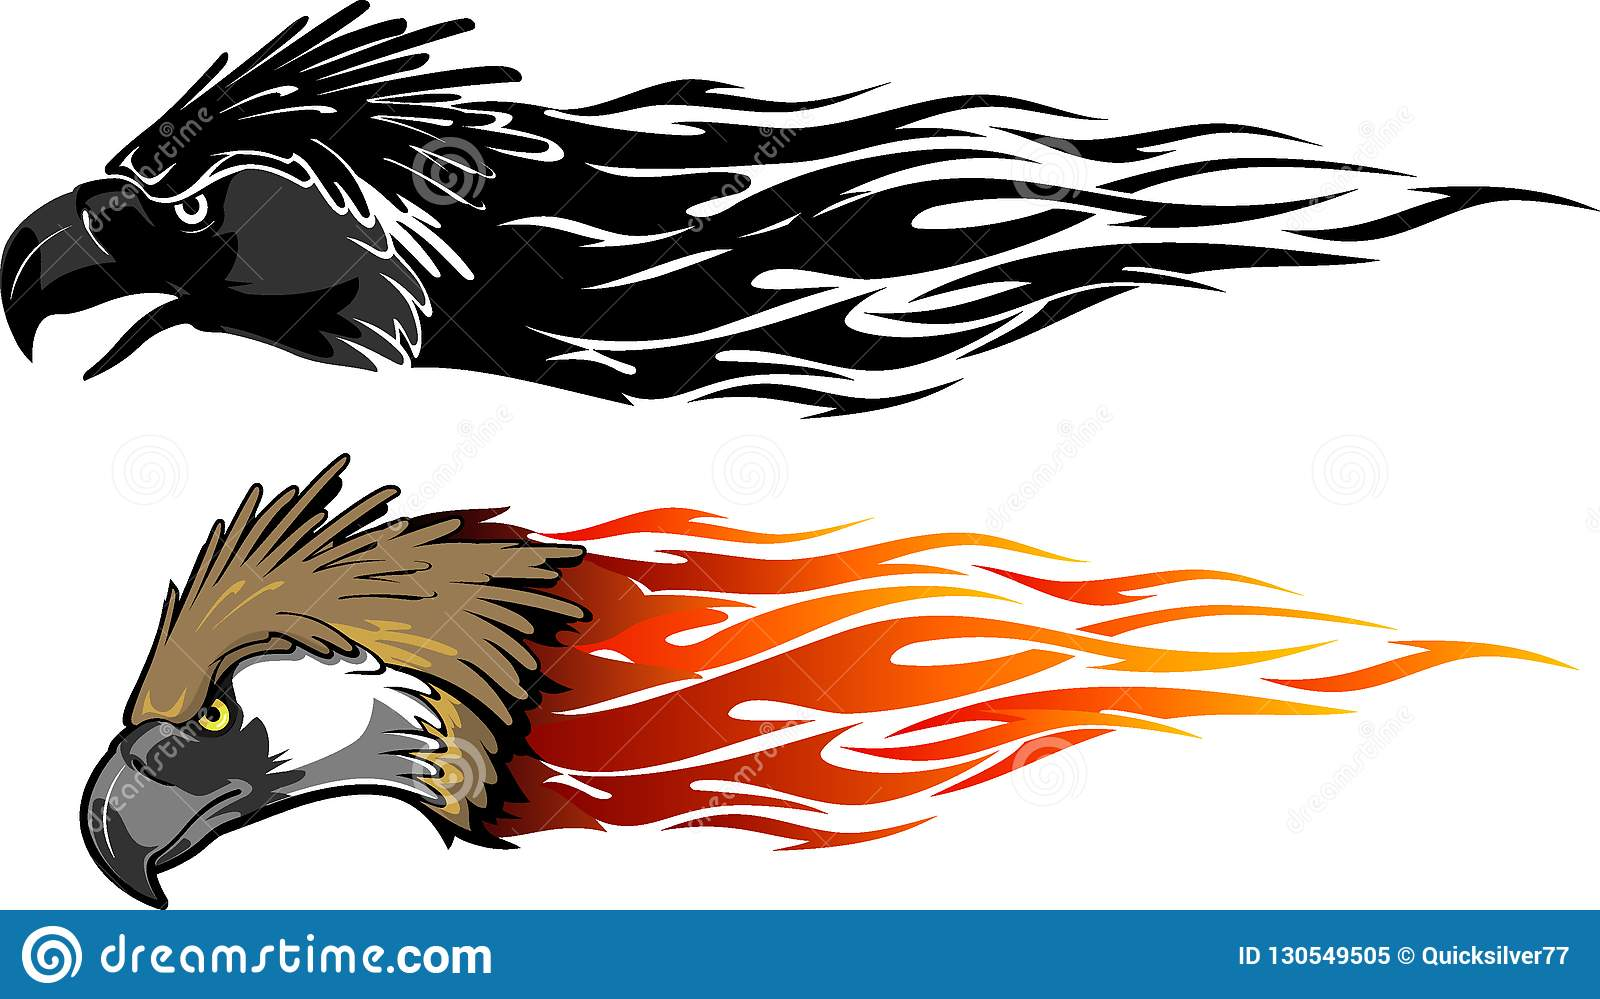 Philippines Eagle Decal